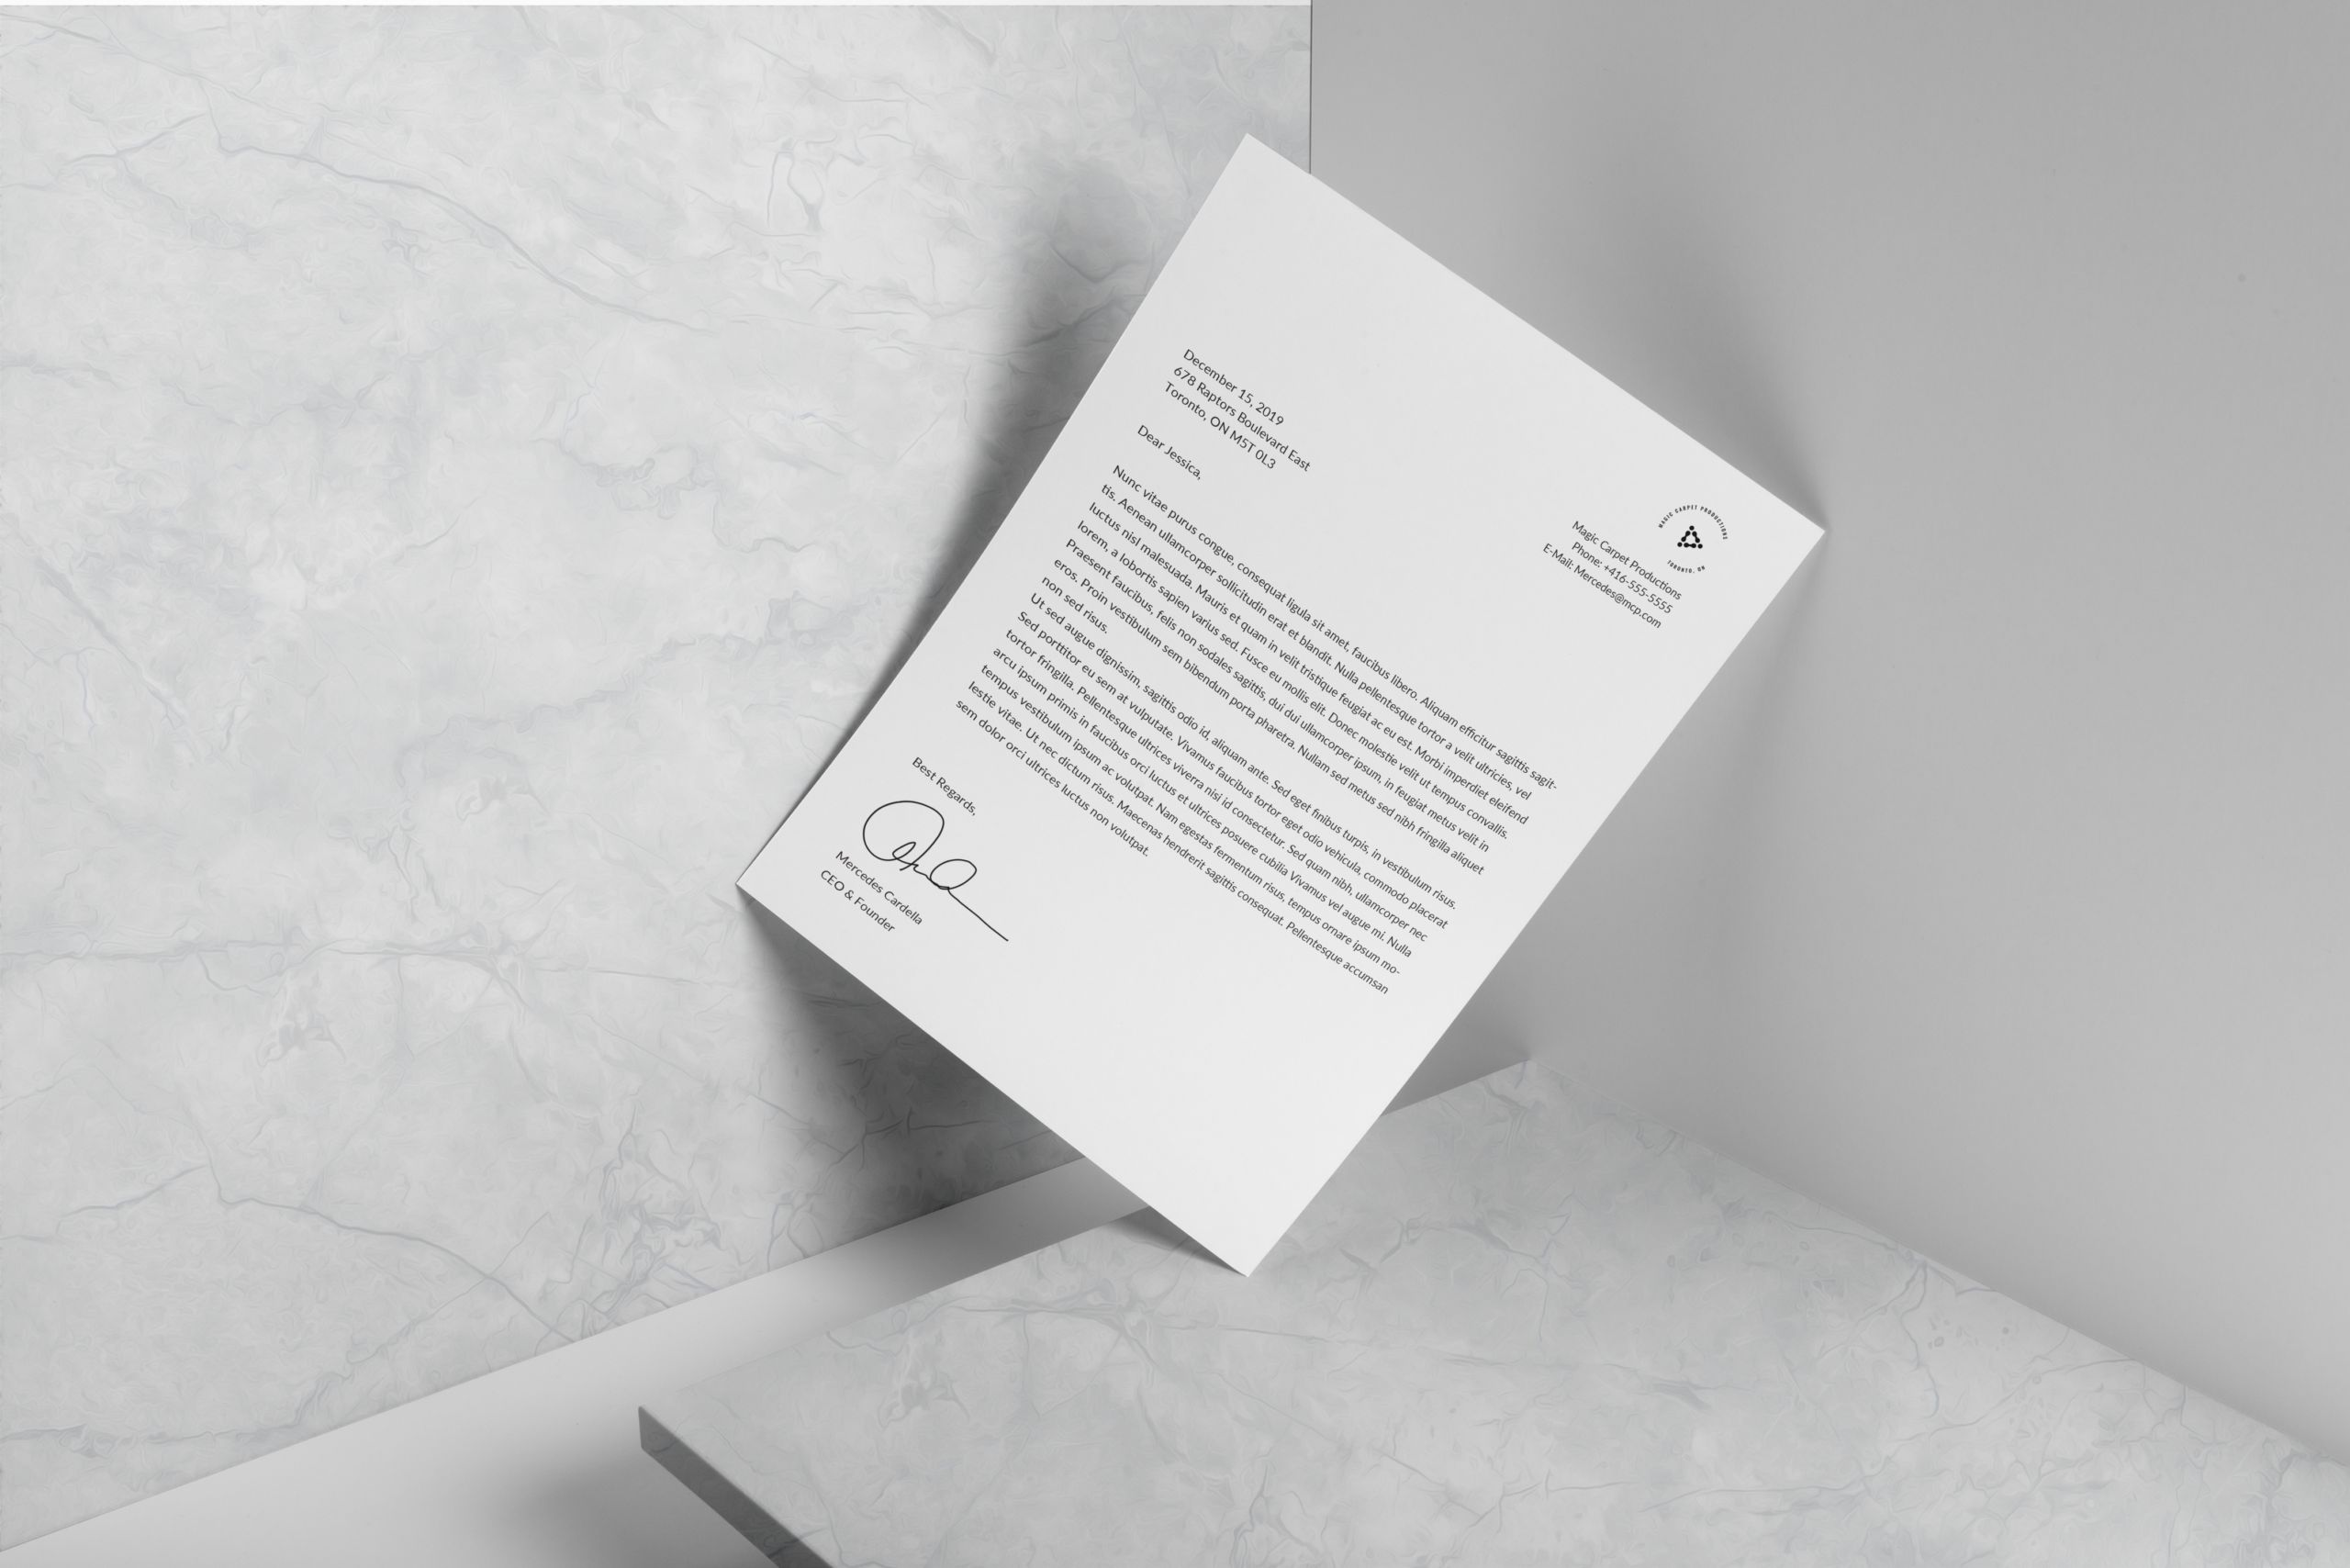 Letterhead created for Magic Carpet Productions by Ace Digital